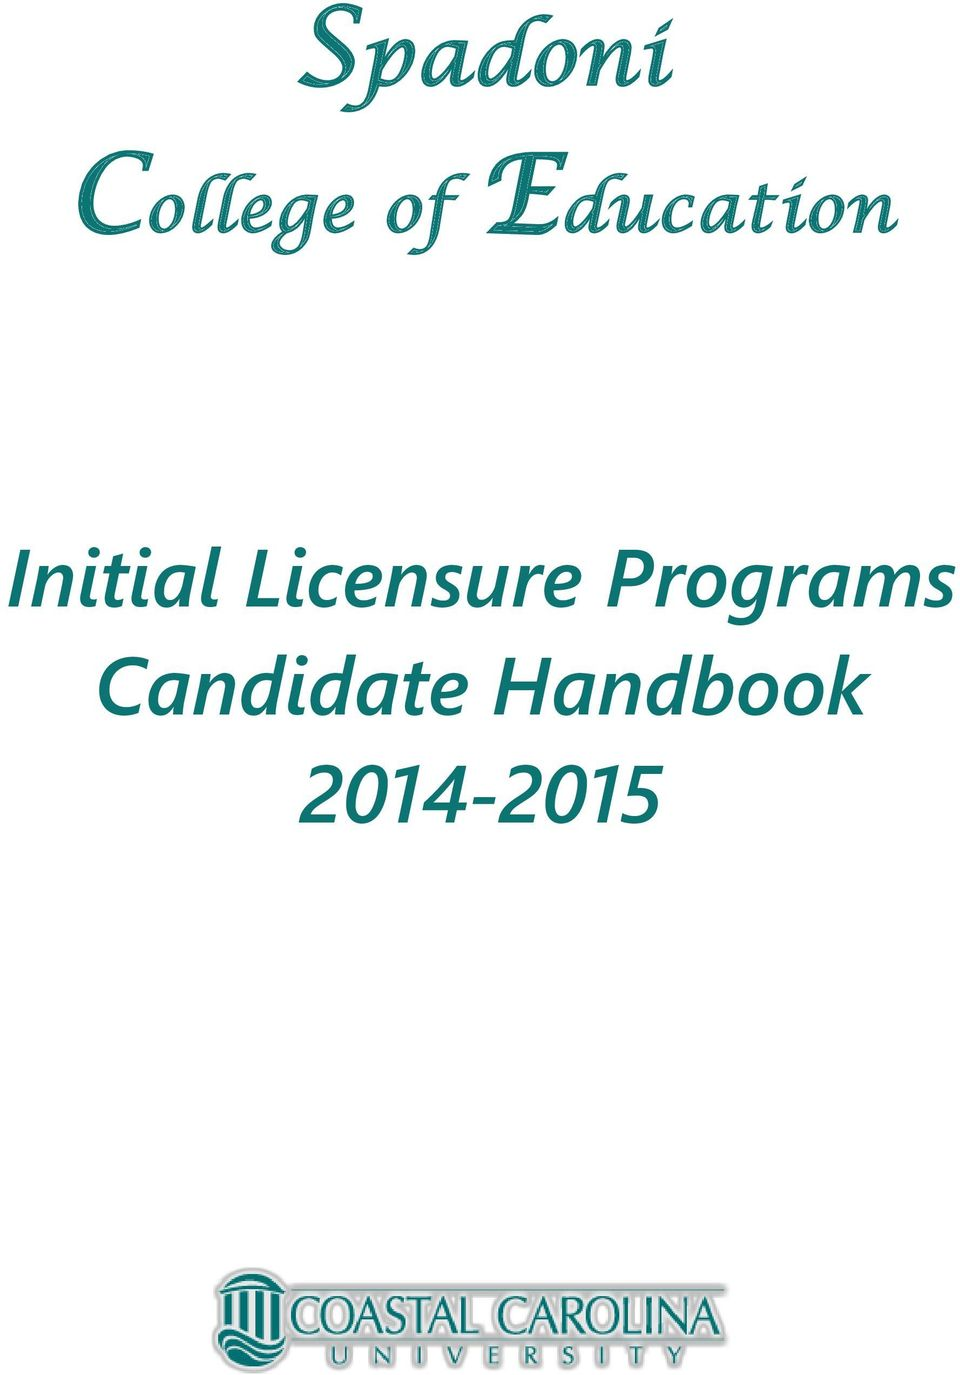 Licensure Programs